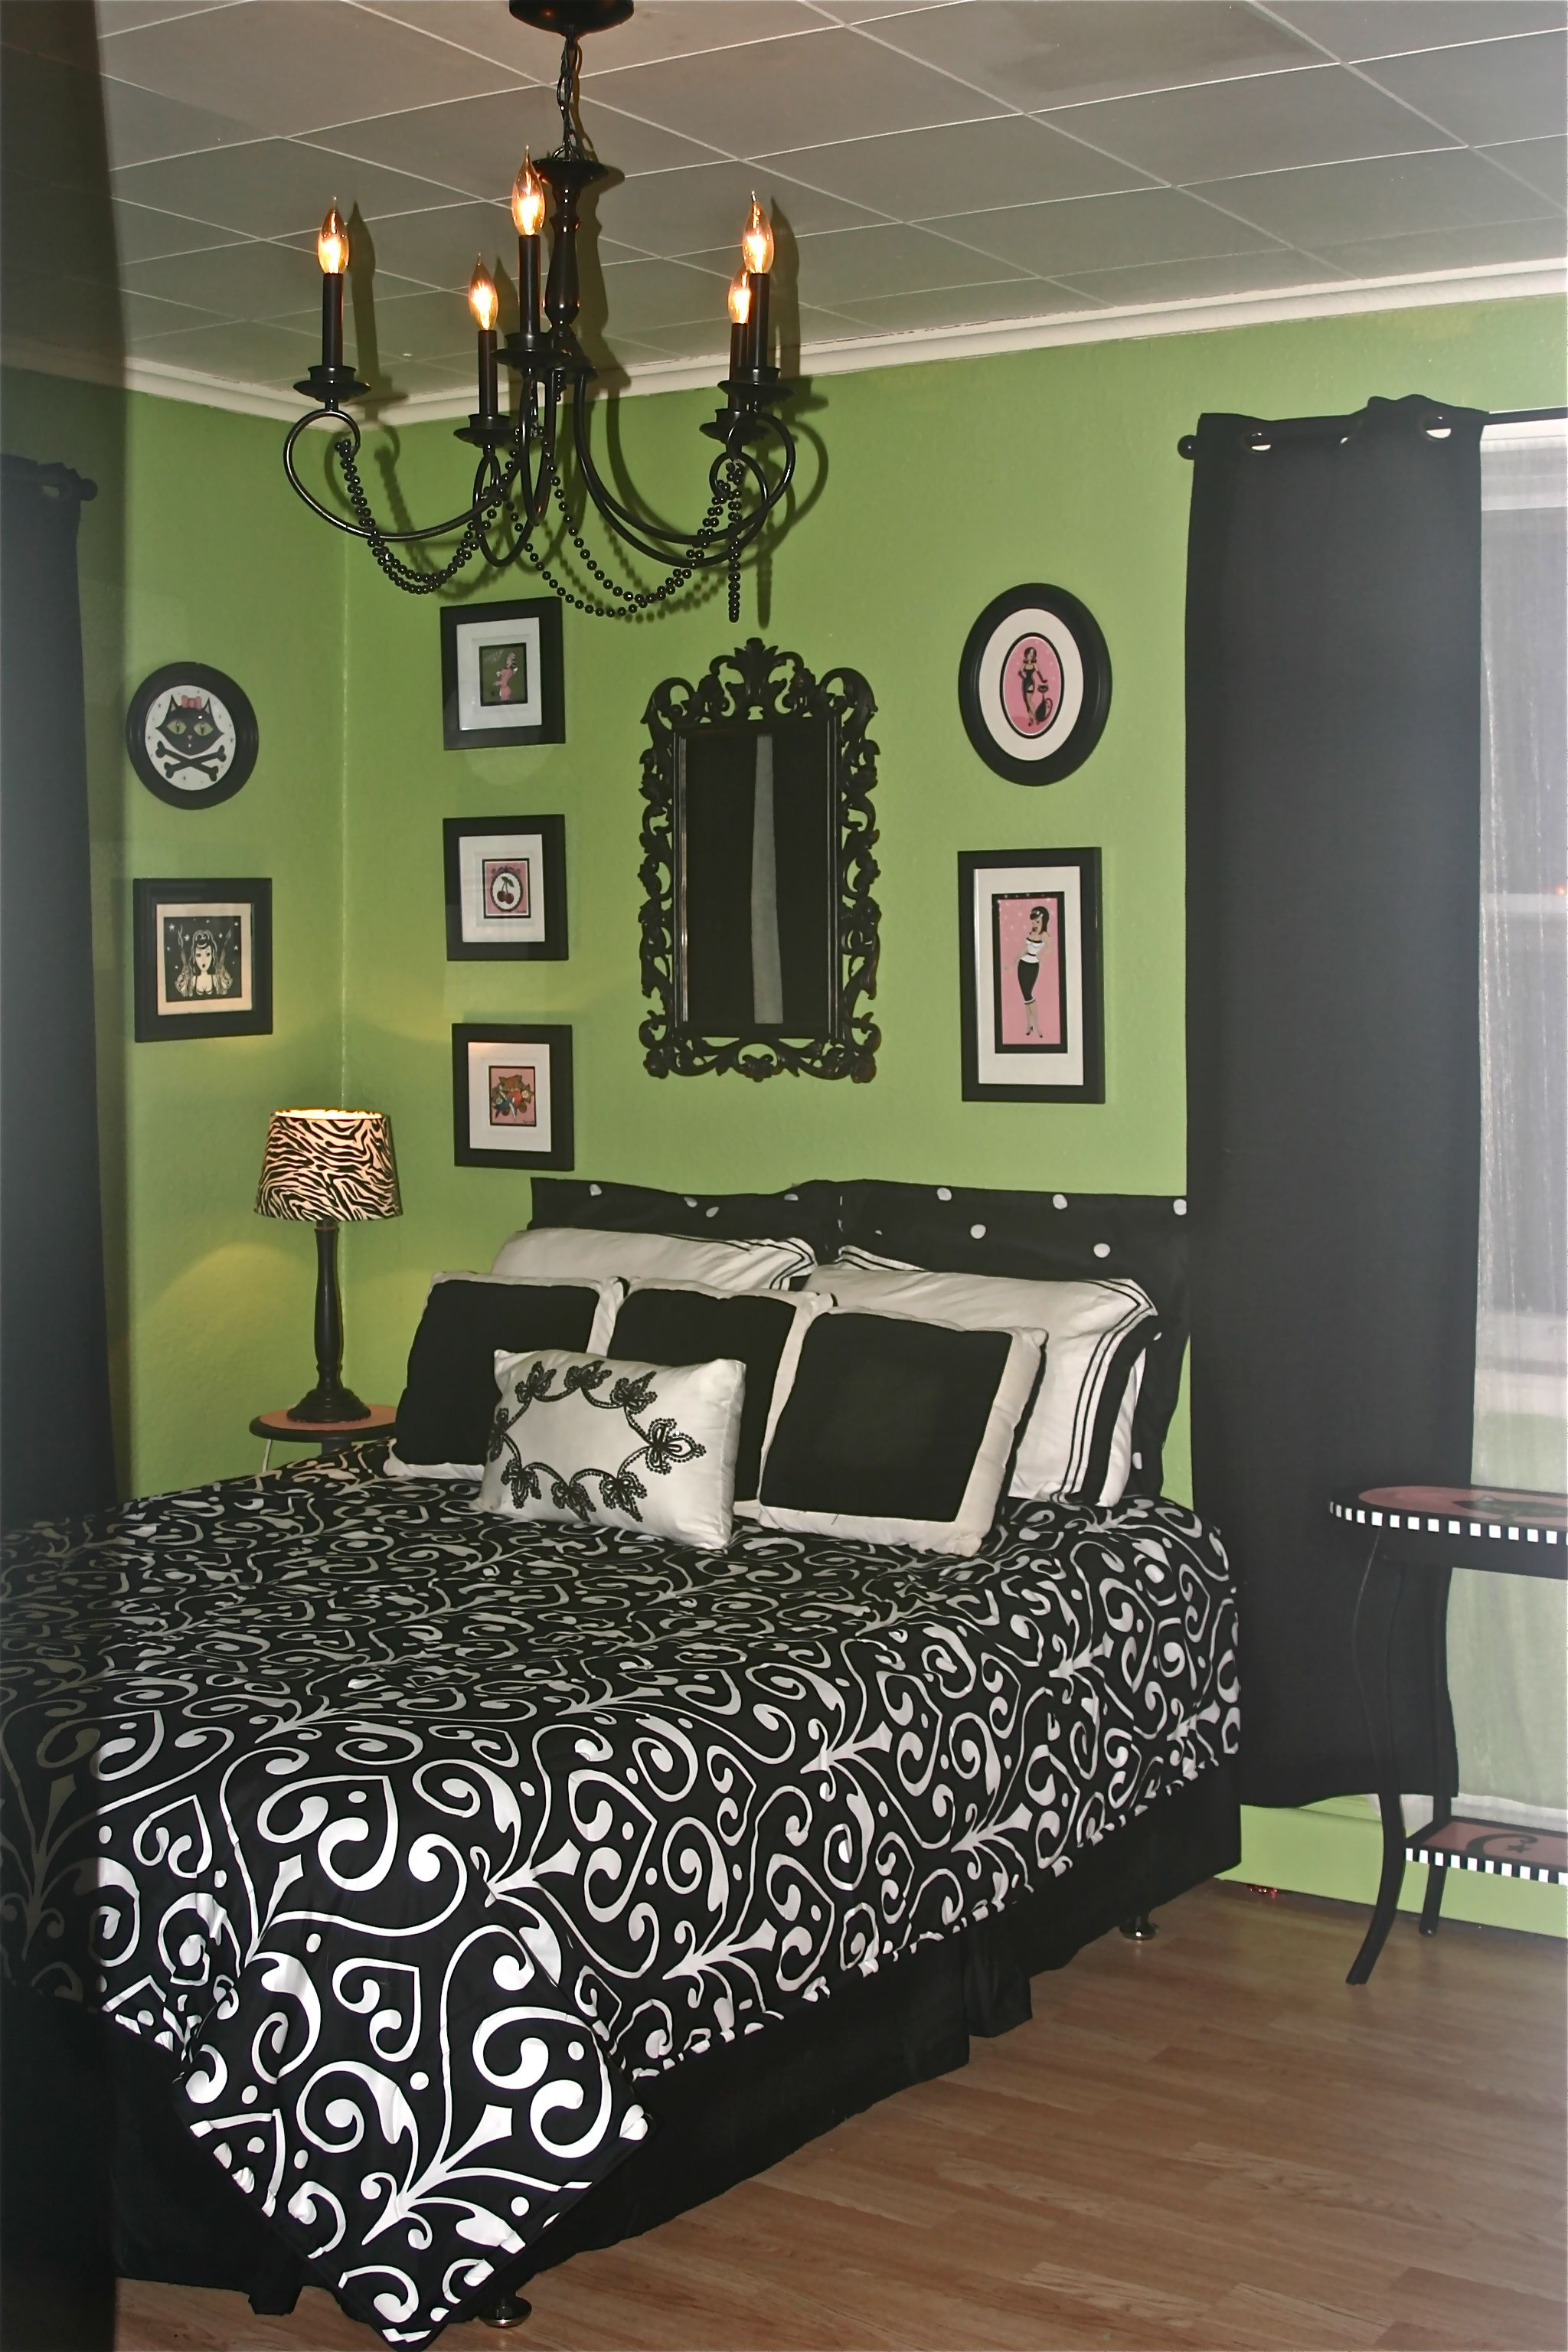 Pink And Green Bedroom Designs Classy Green Black And Pink ~ Just Painted My Bathroom This Green Color Decorating Inspiration